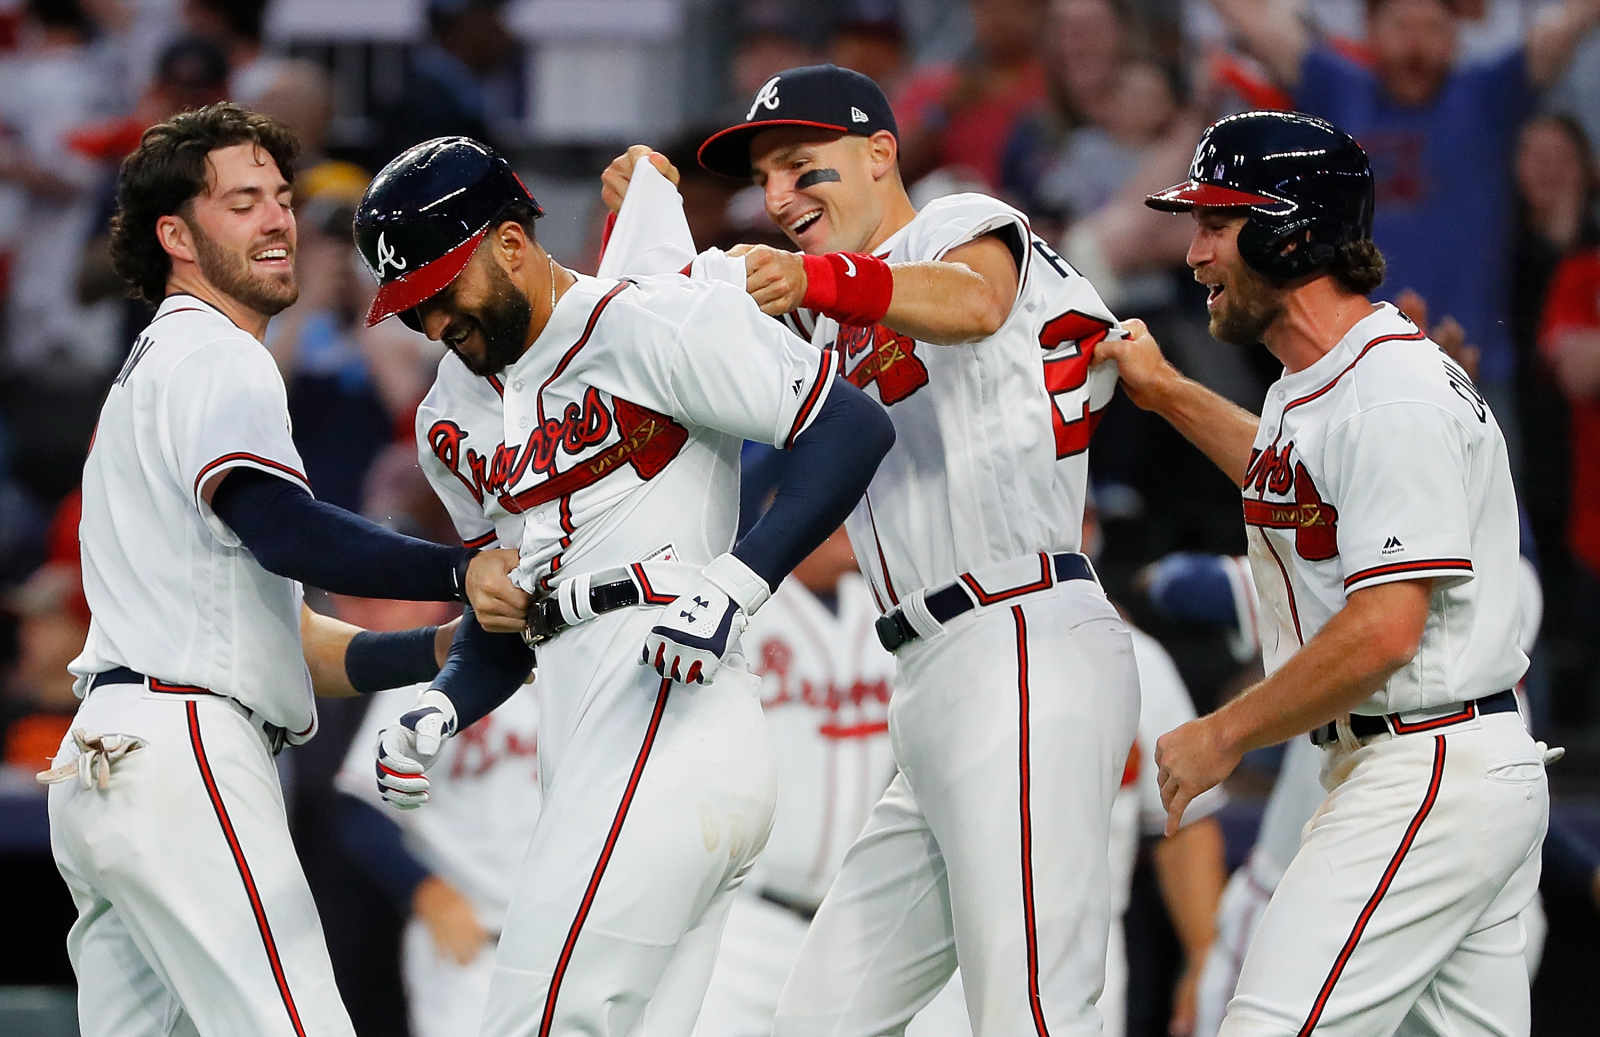 finest selection 0dbfb d327e Atlanta Braves: A pitching rebuild now leads league in offense?!